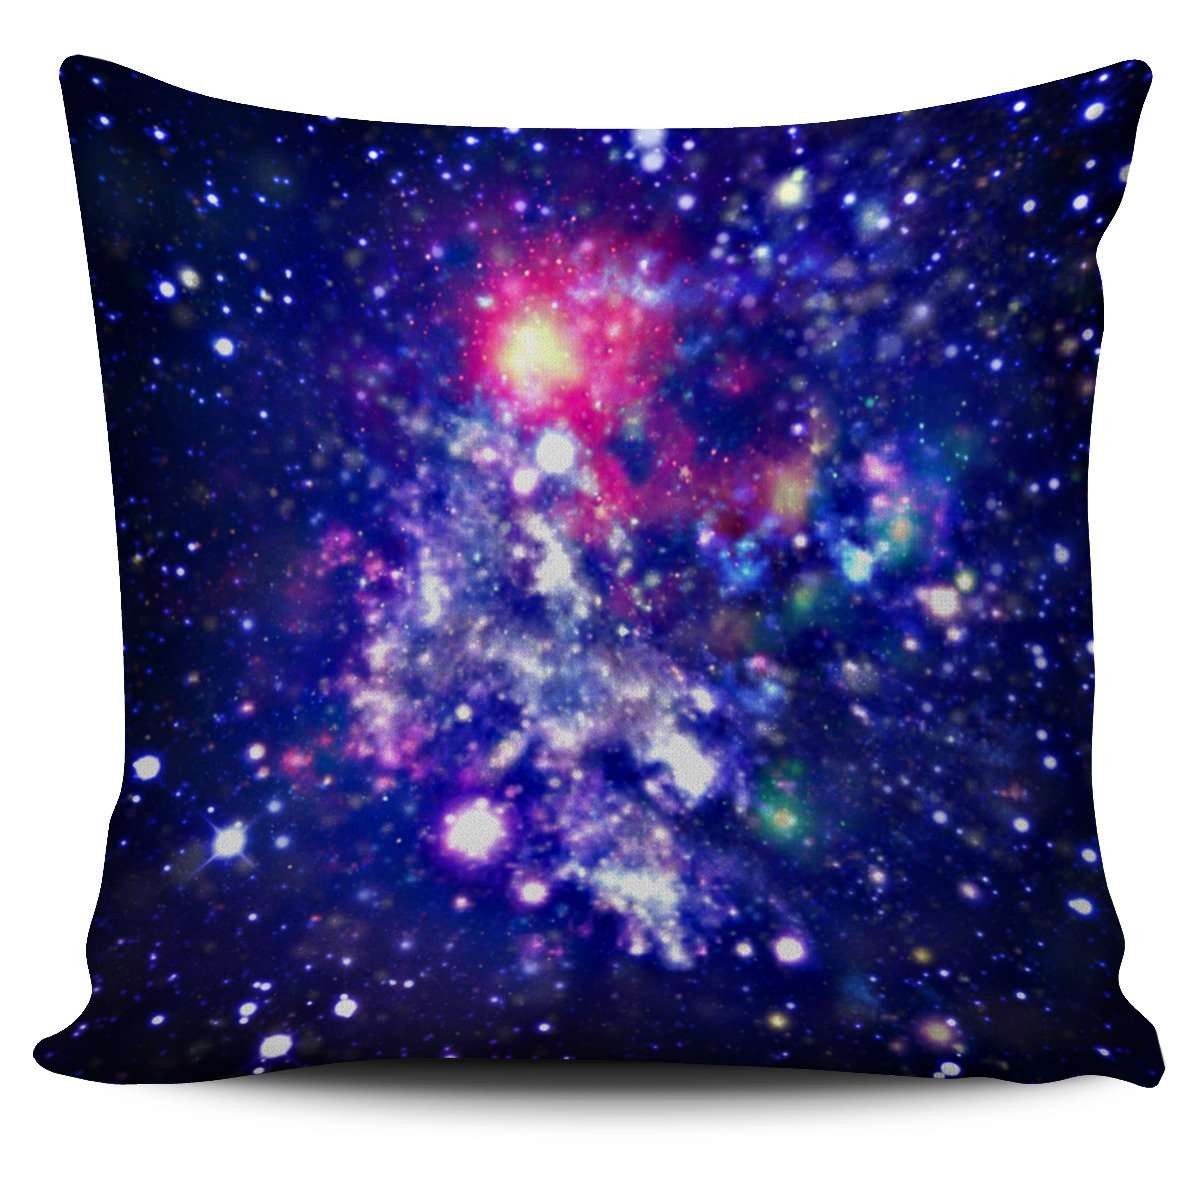 Astronomy Space Galaxy Pillow Case - STUDIO 11 COUTURE